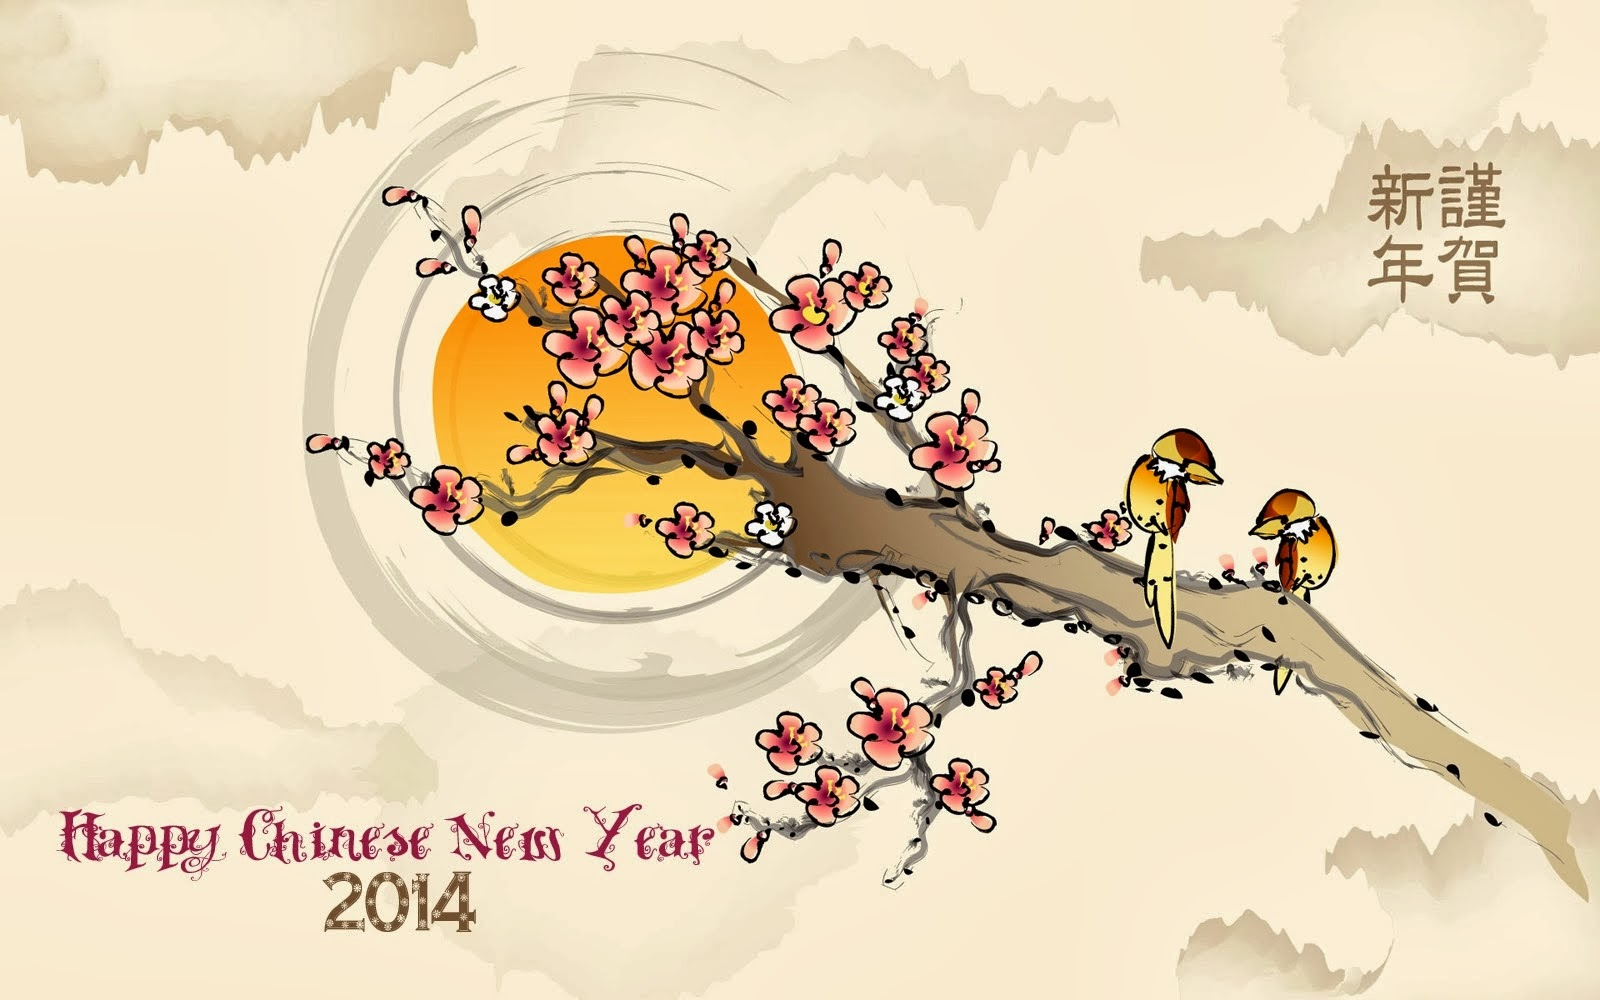 Happy new year 2014 wishes wallpaper with lunar new year greeting happy new year 2014 wishes wallpaper with lunar new year greeting cards m4hsunfo